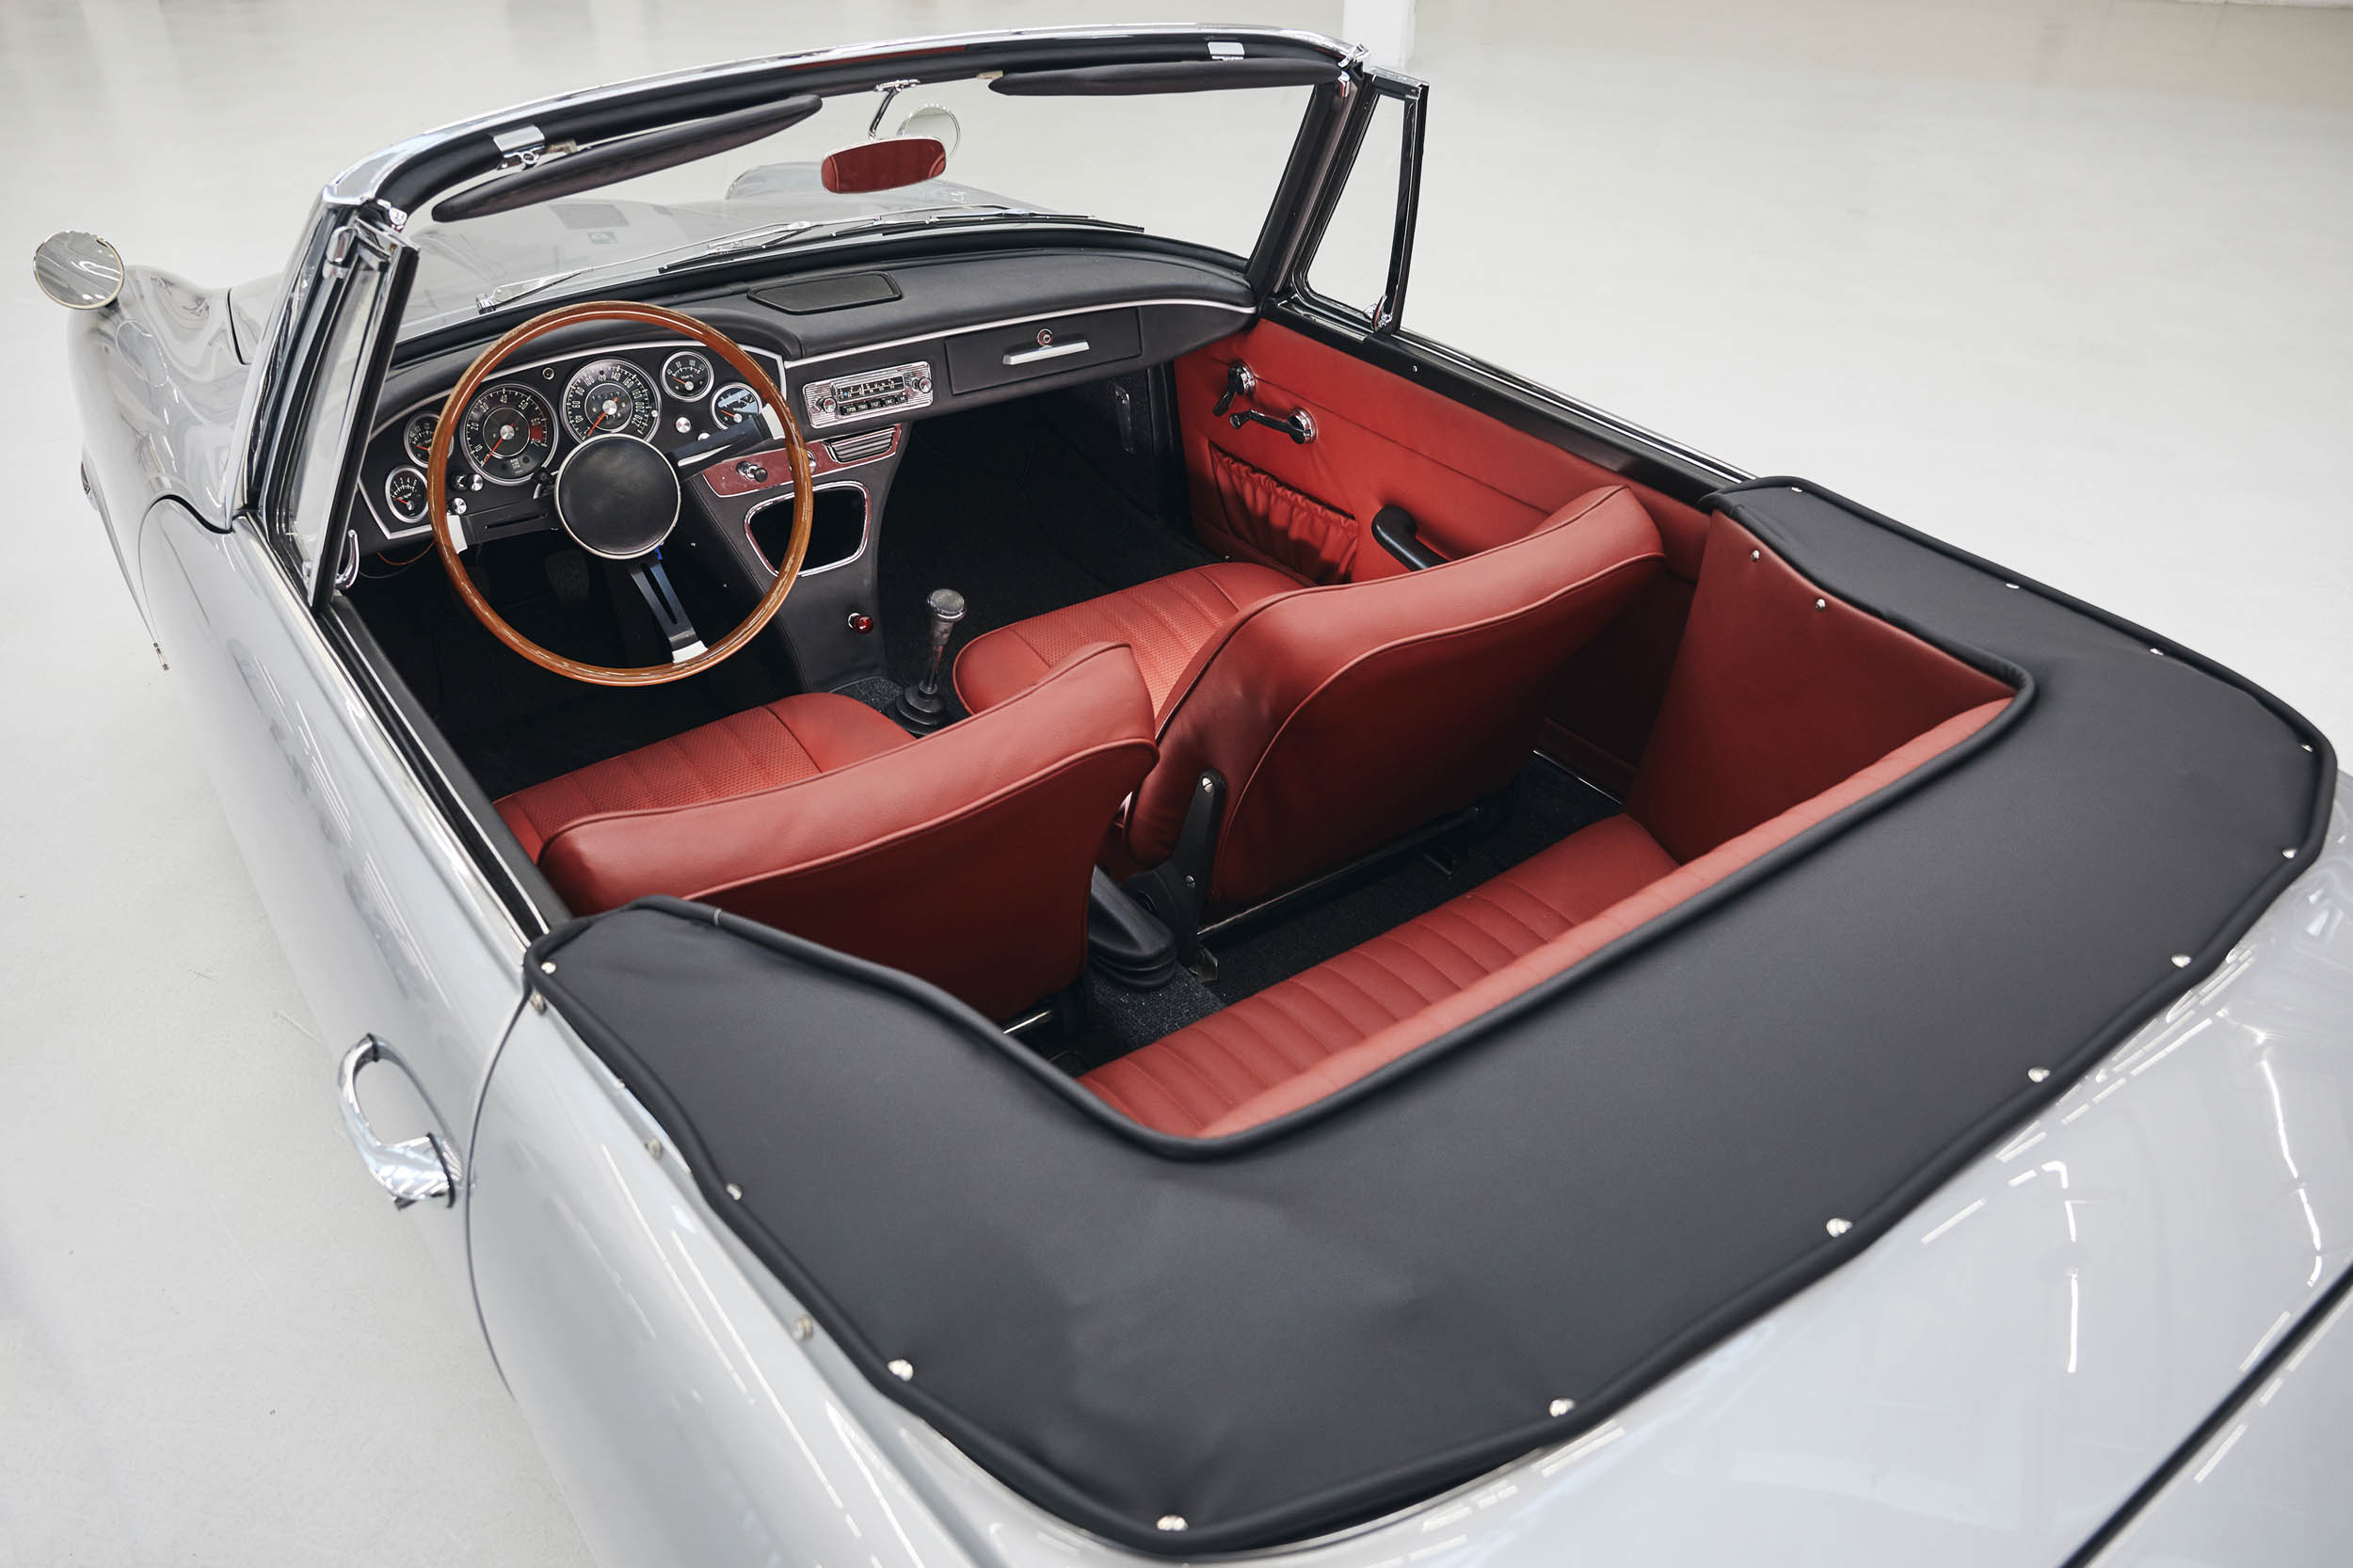 BMW 1600 GT convertible interior